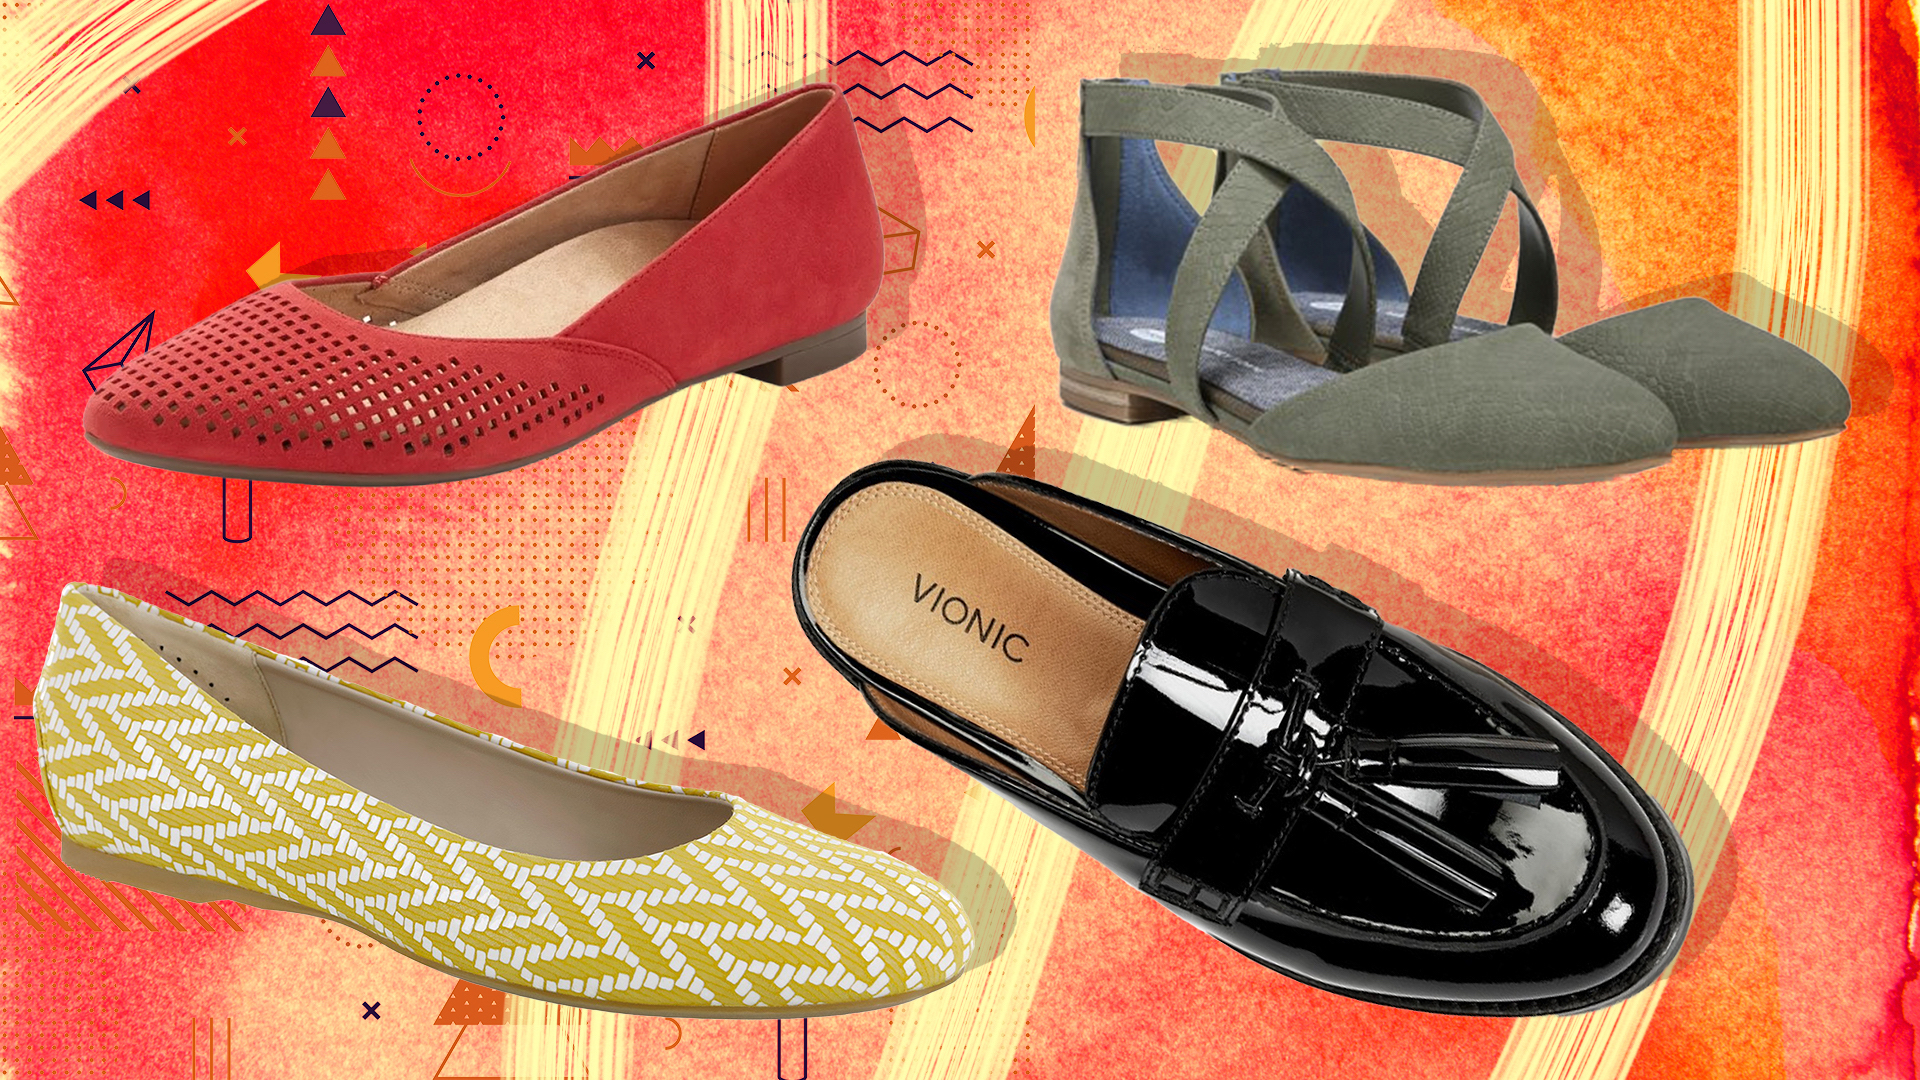 d120bea0c11a Stylish Flats That Are Actually Good for Your Feet – SheKnows